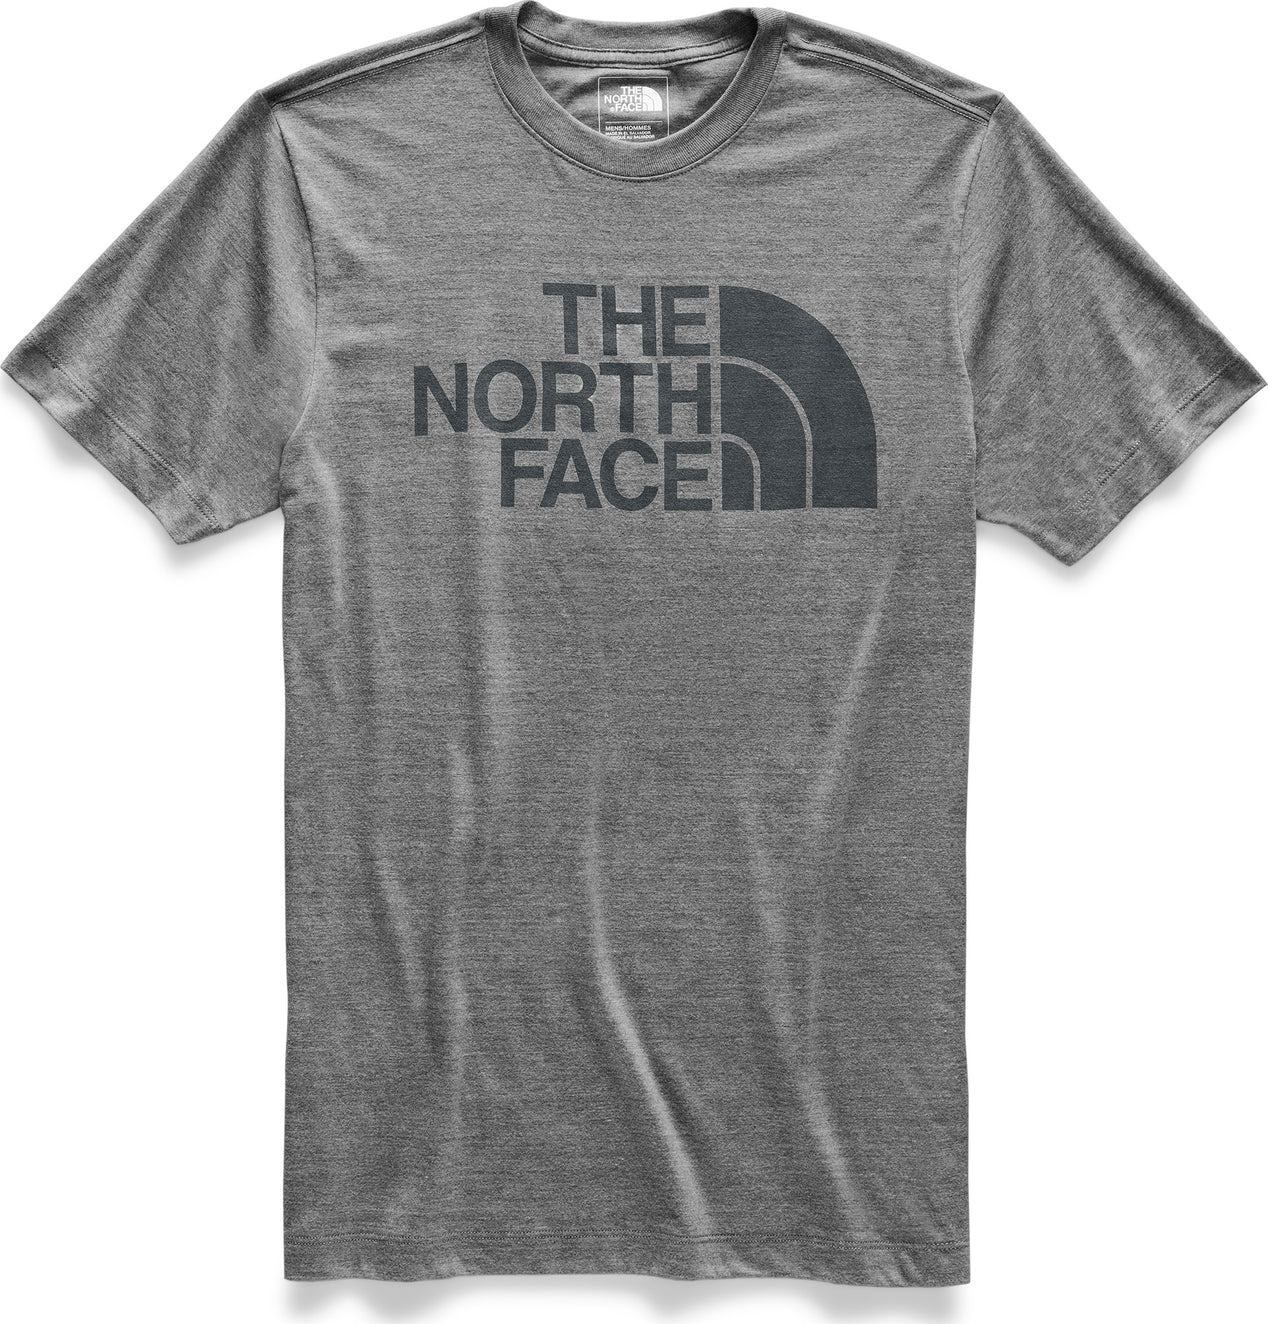 d4d21db17 The North Face S/S Half Dome New Triblend Tee - Men's